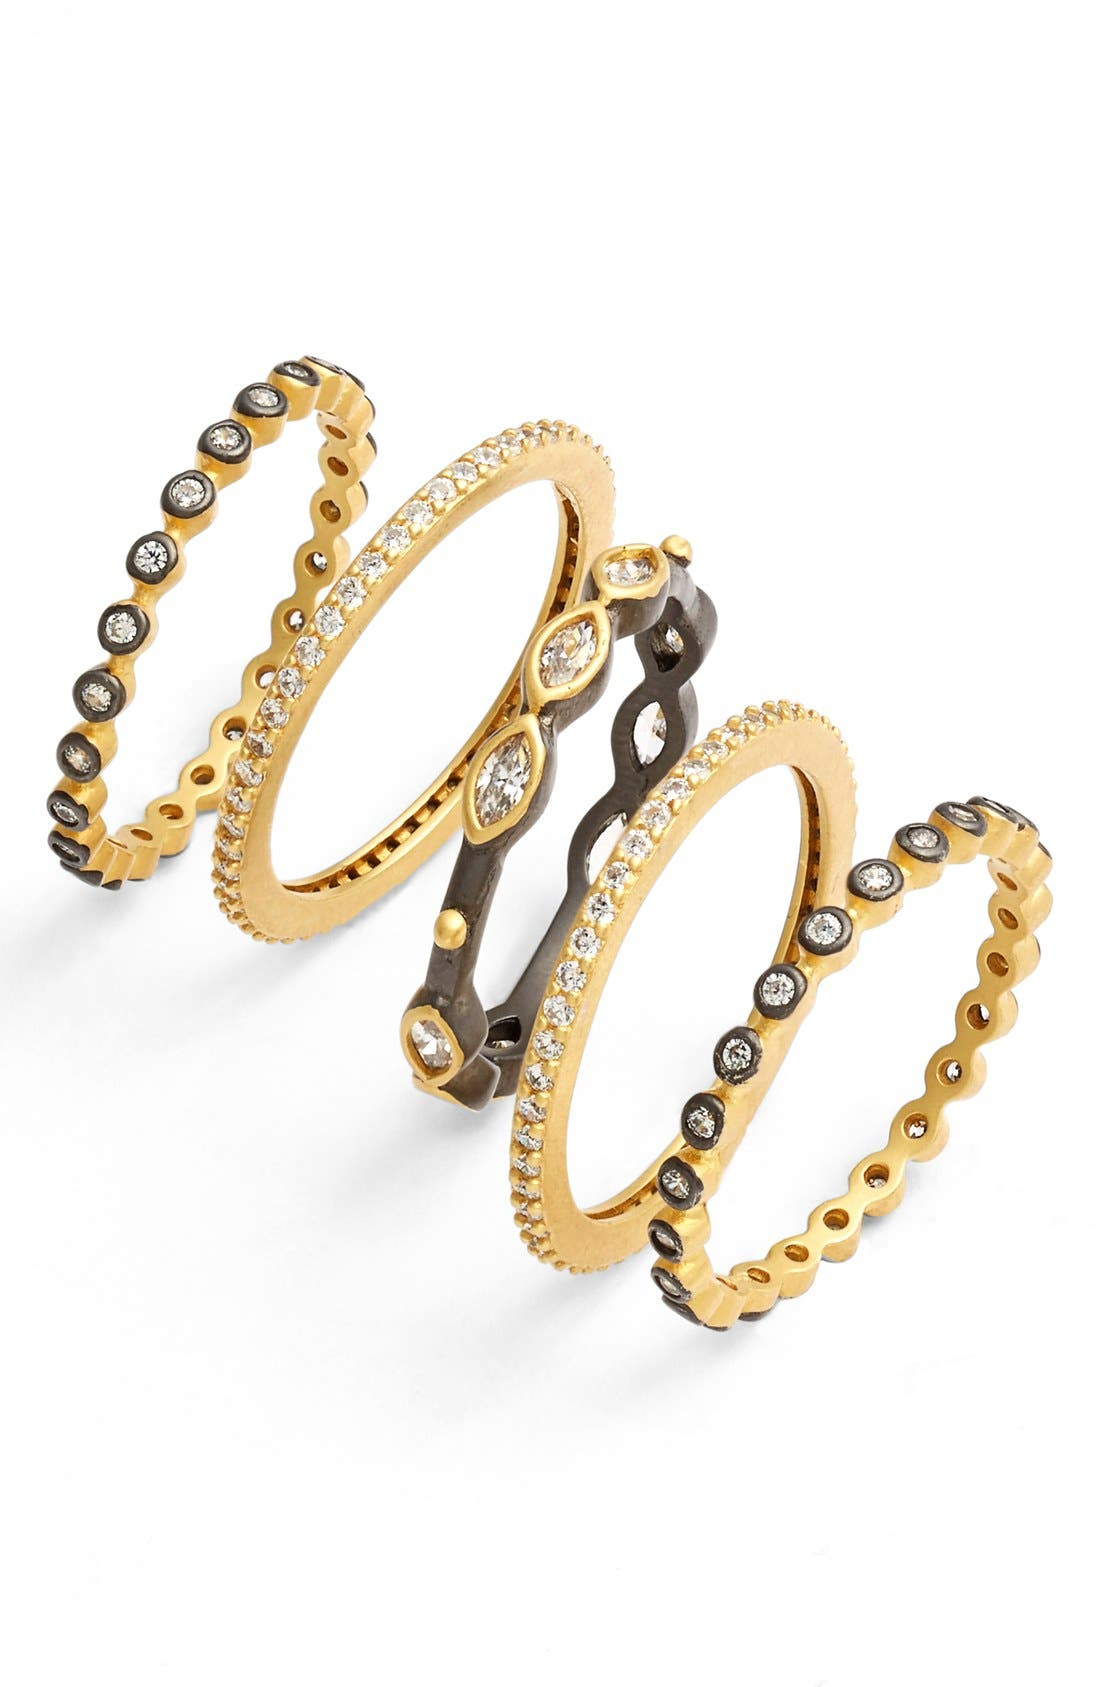 Main Image - FREIDA ROTHMAN Delicate Stackable Rings (Set of 5)